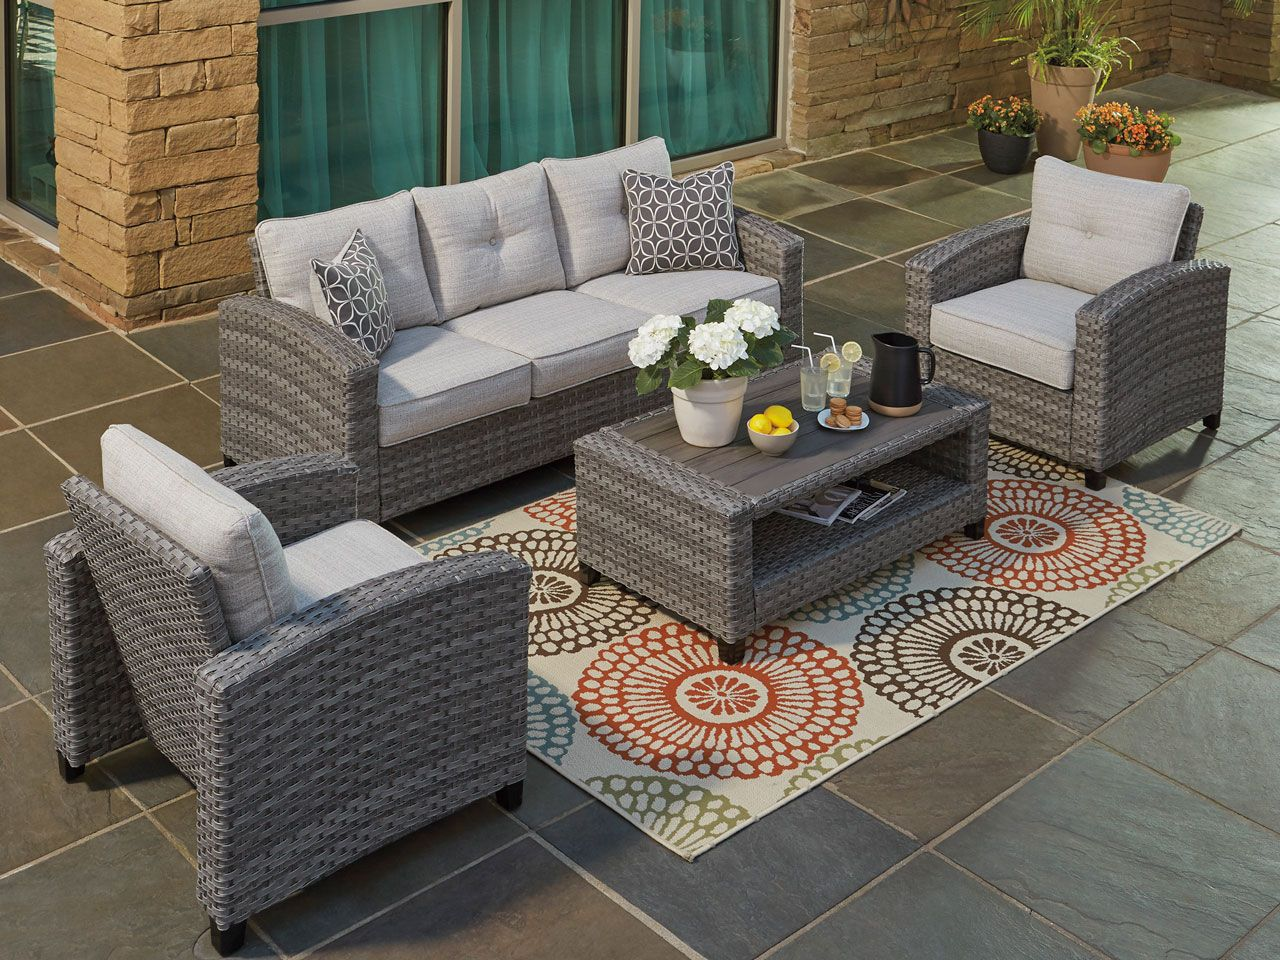 Salerno Aluminum Outdoor Wicker 4 Pc Sofa Group Fortunoff Backyard Store Teak Outdoor Weathered Teak Outdoor Wicker